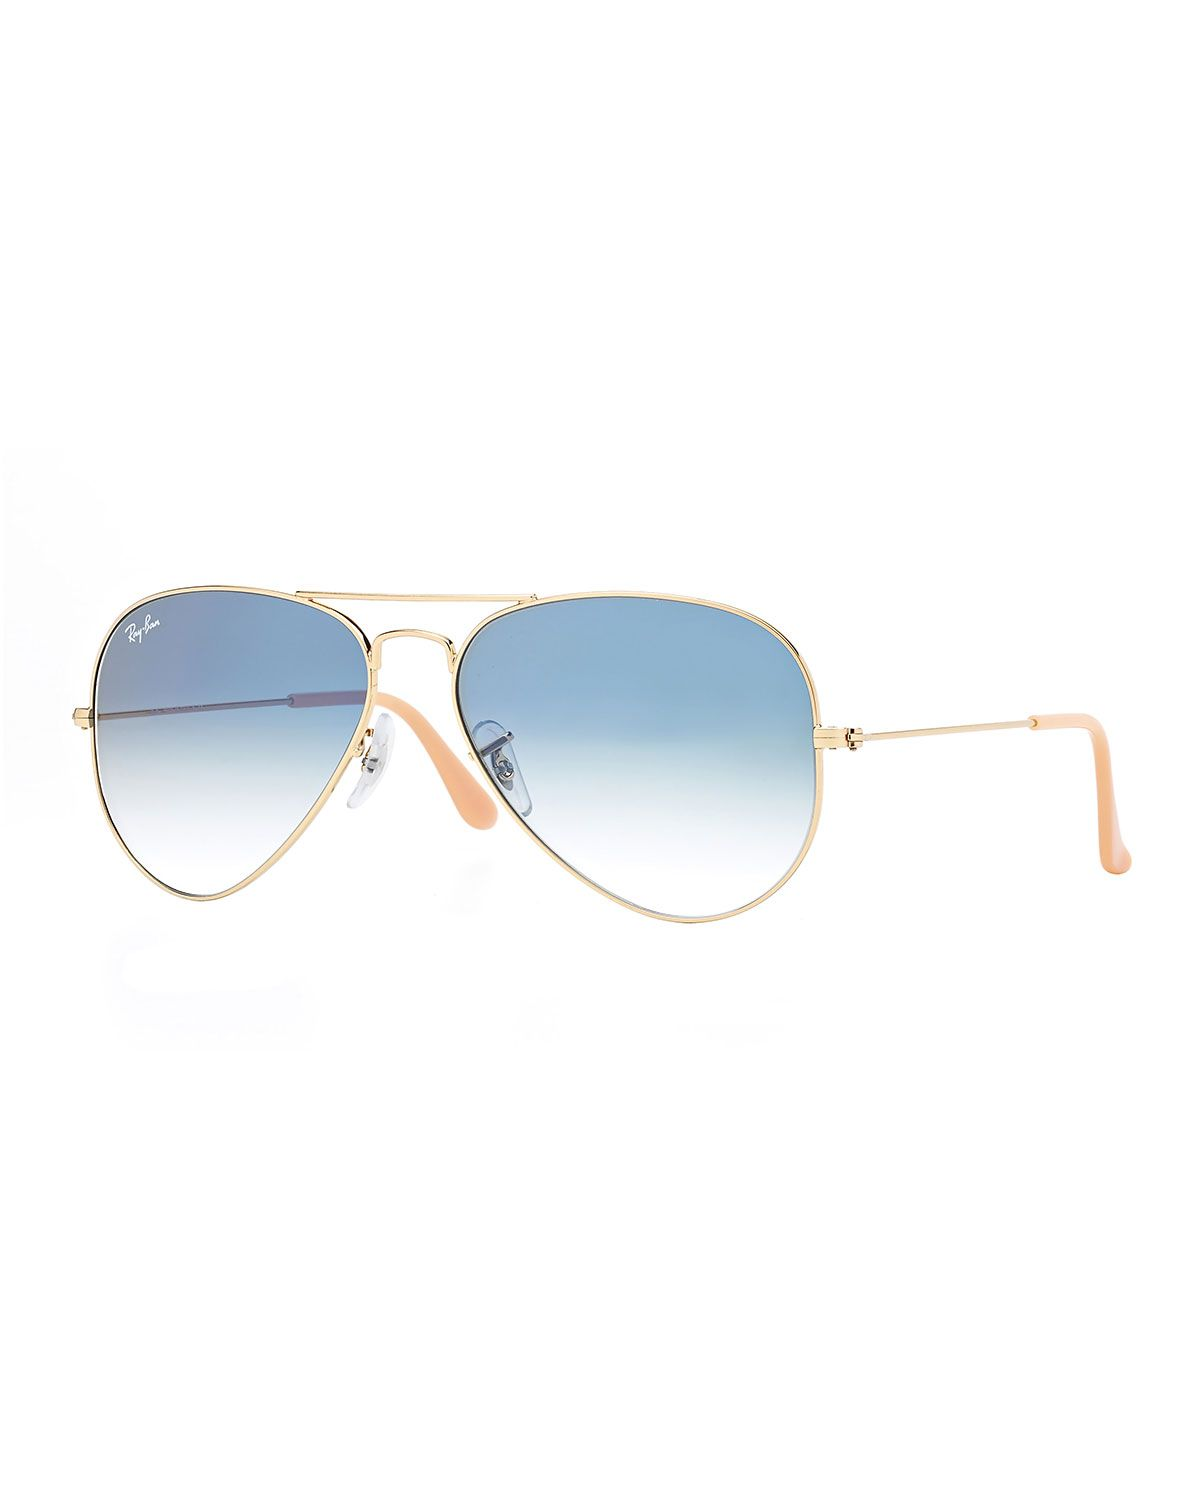 f8820b1e07dd Gradient Aviator Sunglasses, Golden/Blue, Size: 62MM, Gold/Blue - Ray-Ban